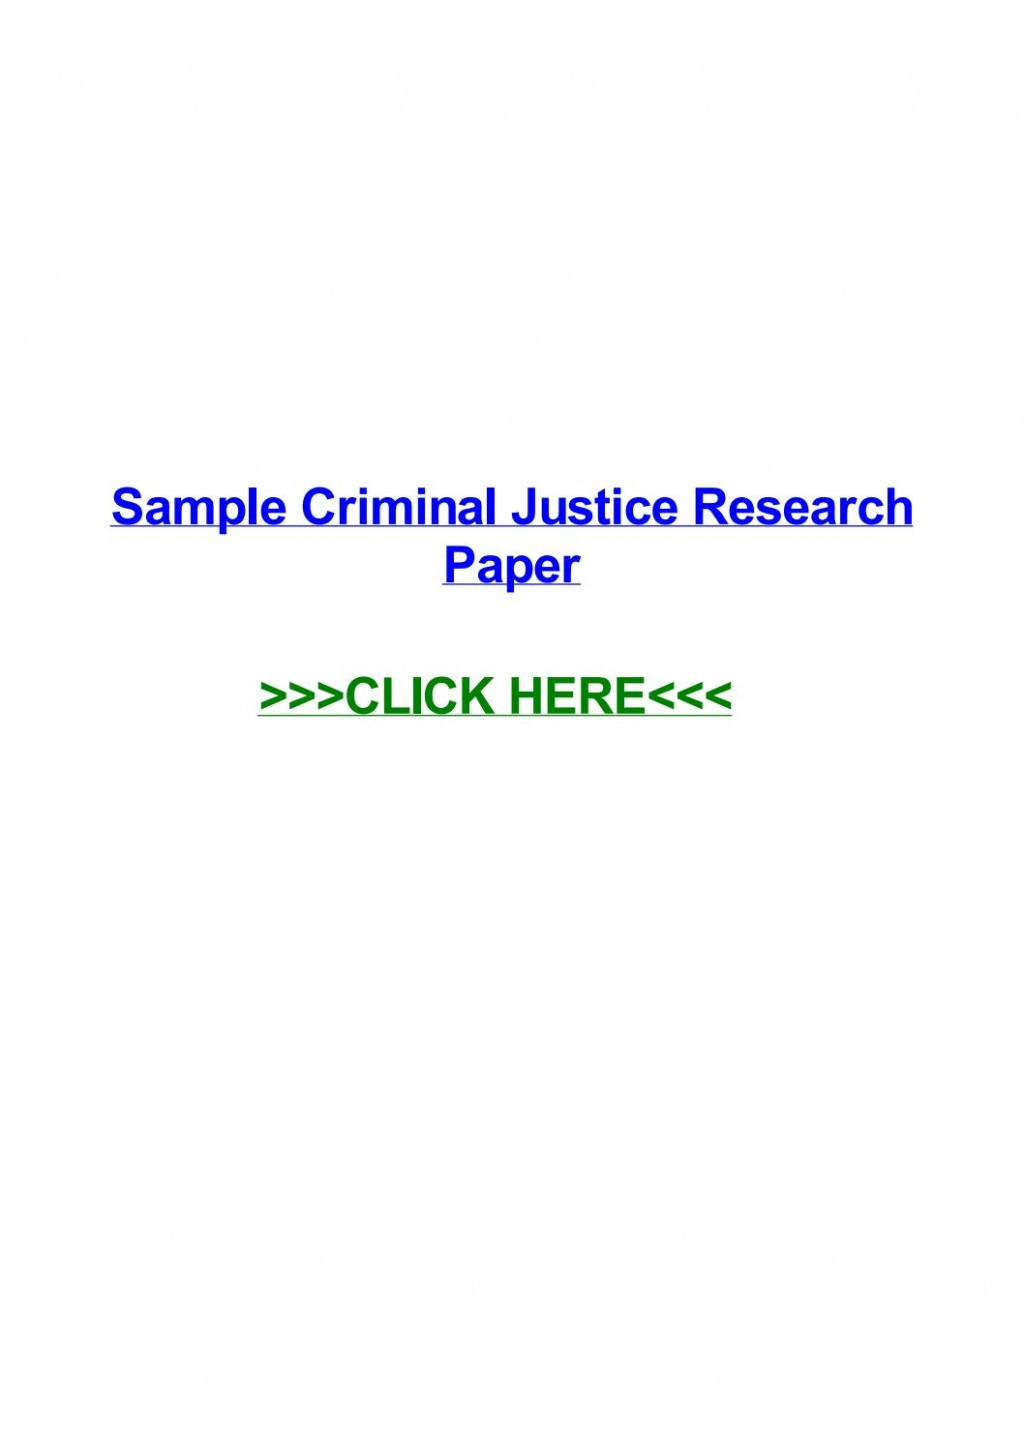 009 Criminal Justice Researchs Free Page 1 Unforgettable Research Papers Large